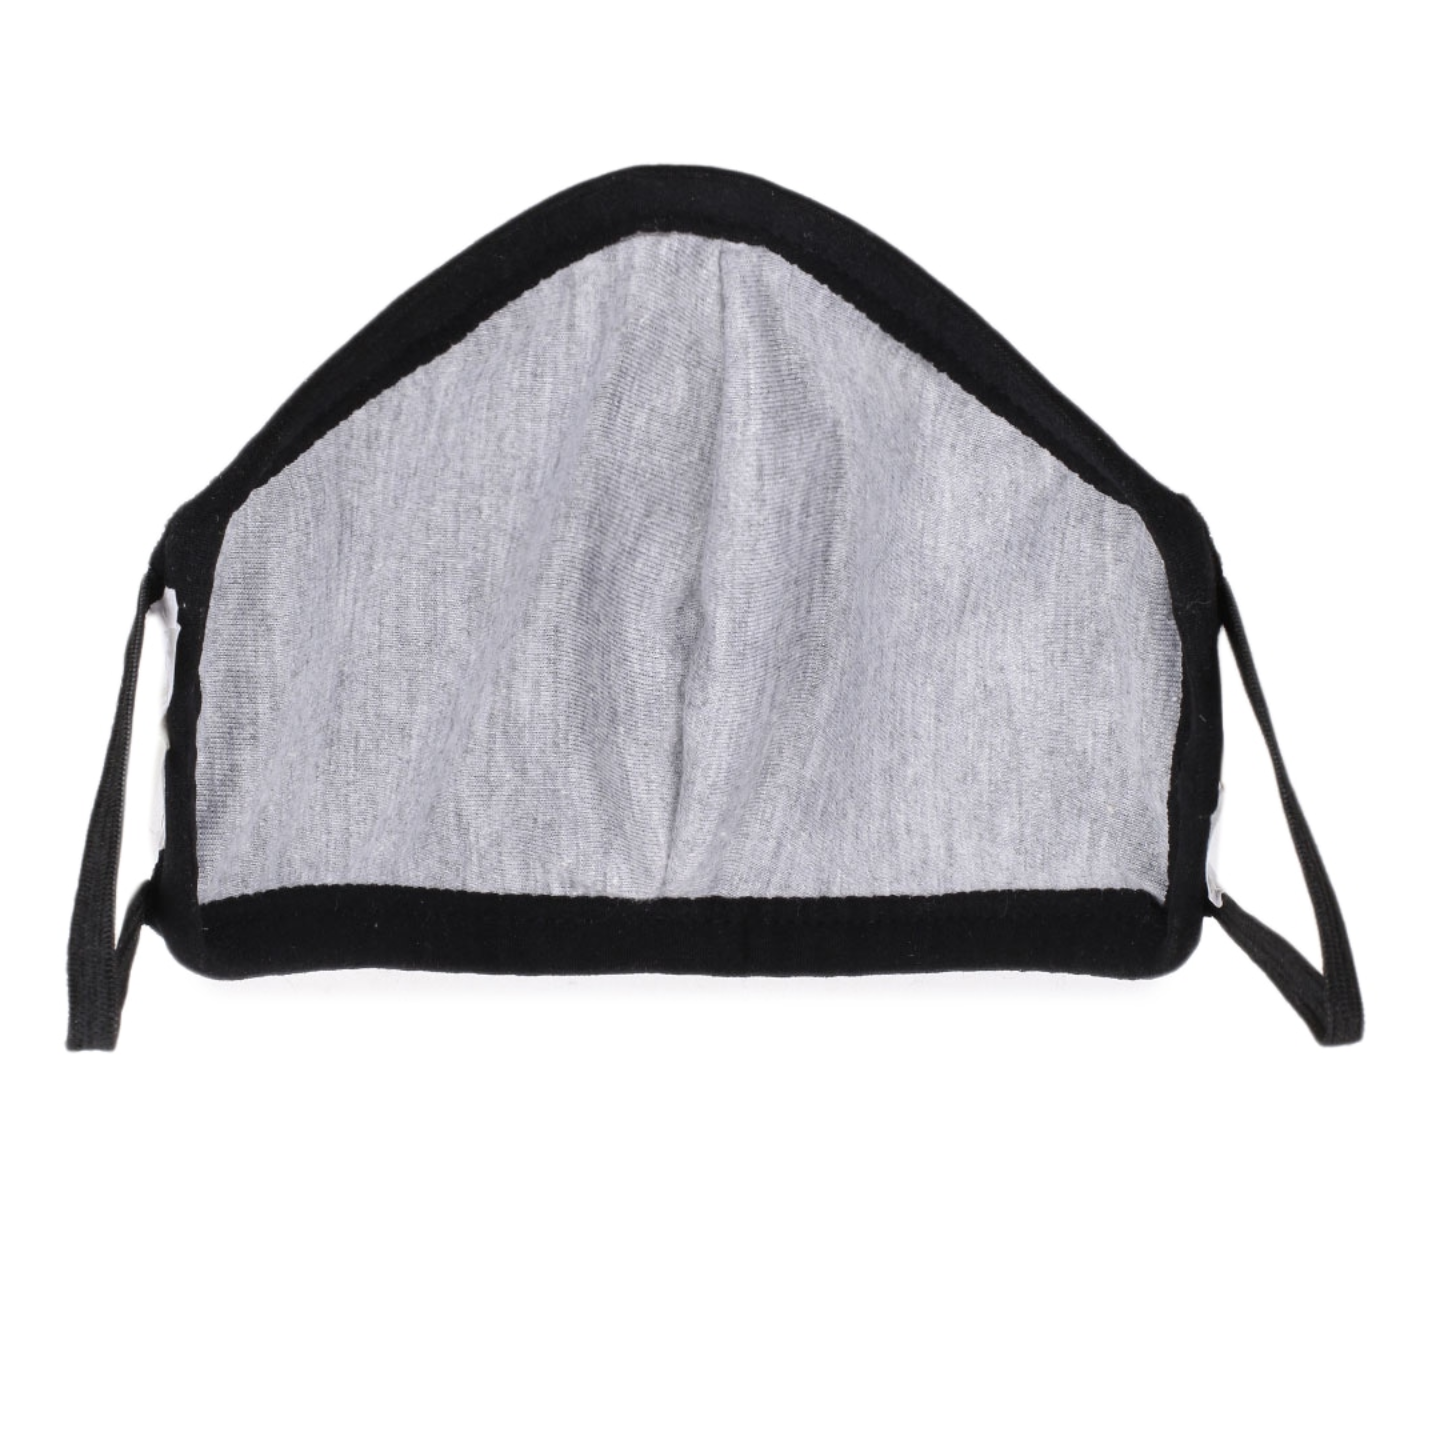 Wildcraft 6 Layer W95 Reusable Mask- 1 piece